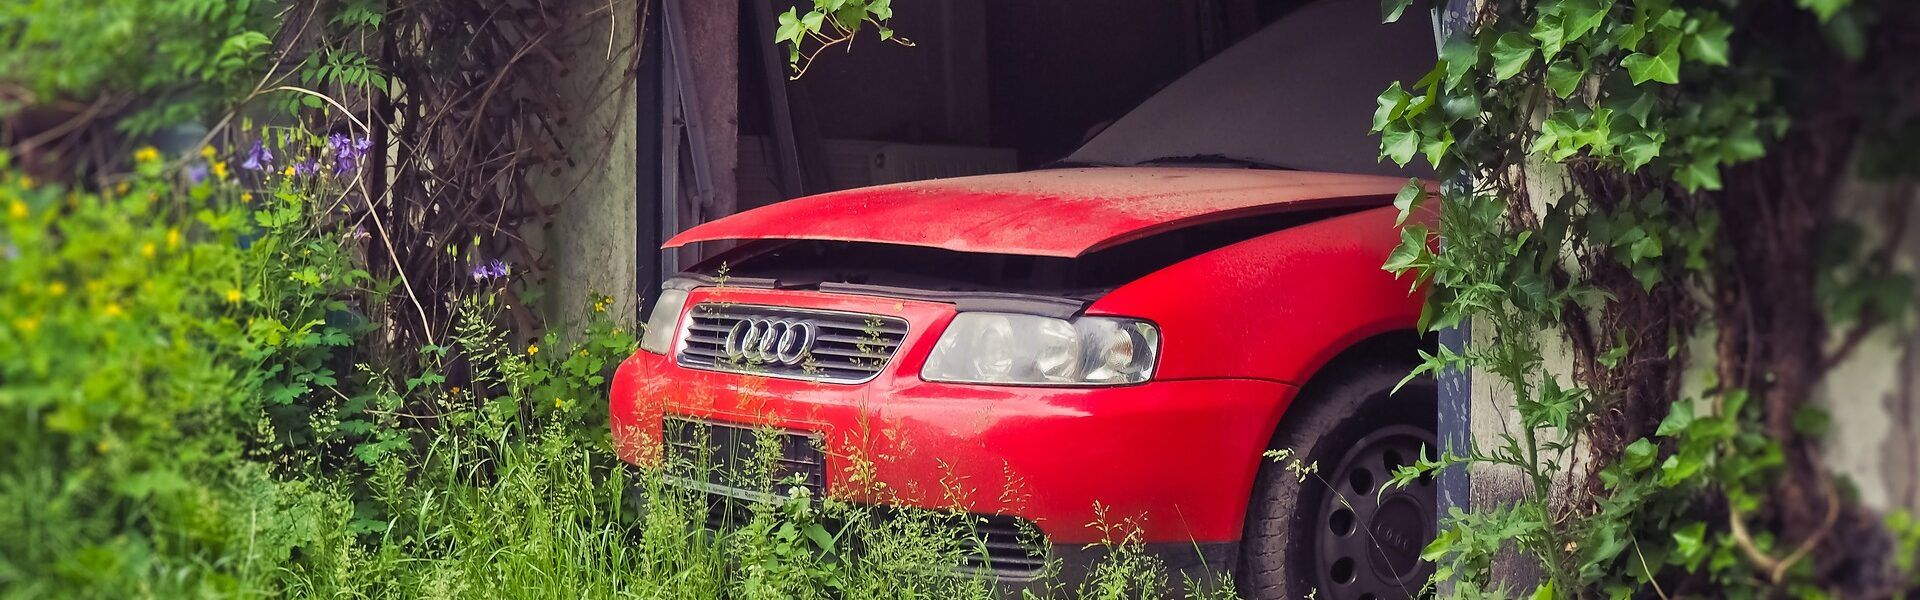 coches-zombies